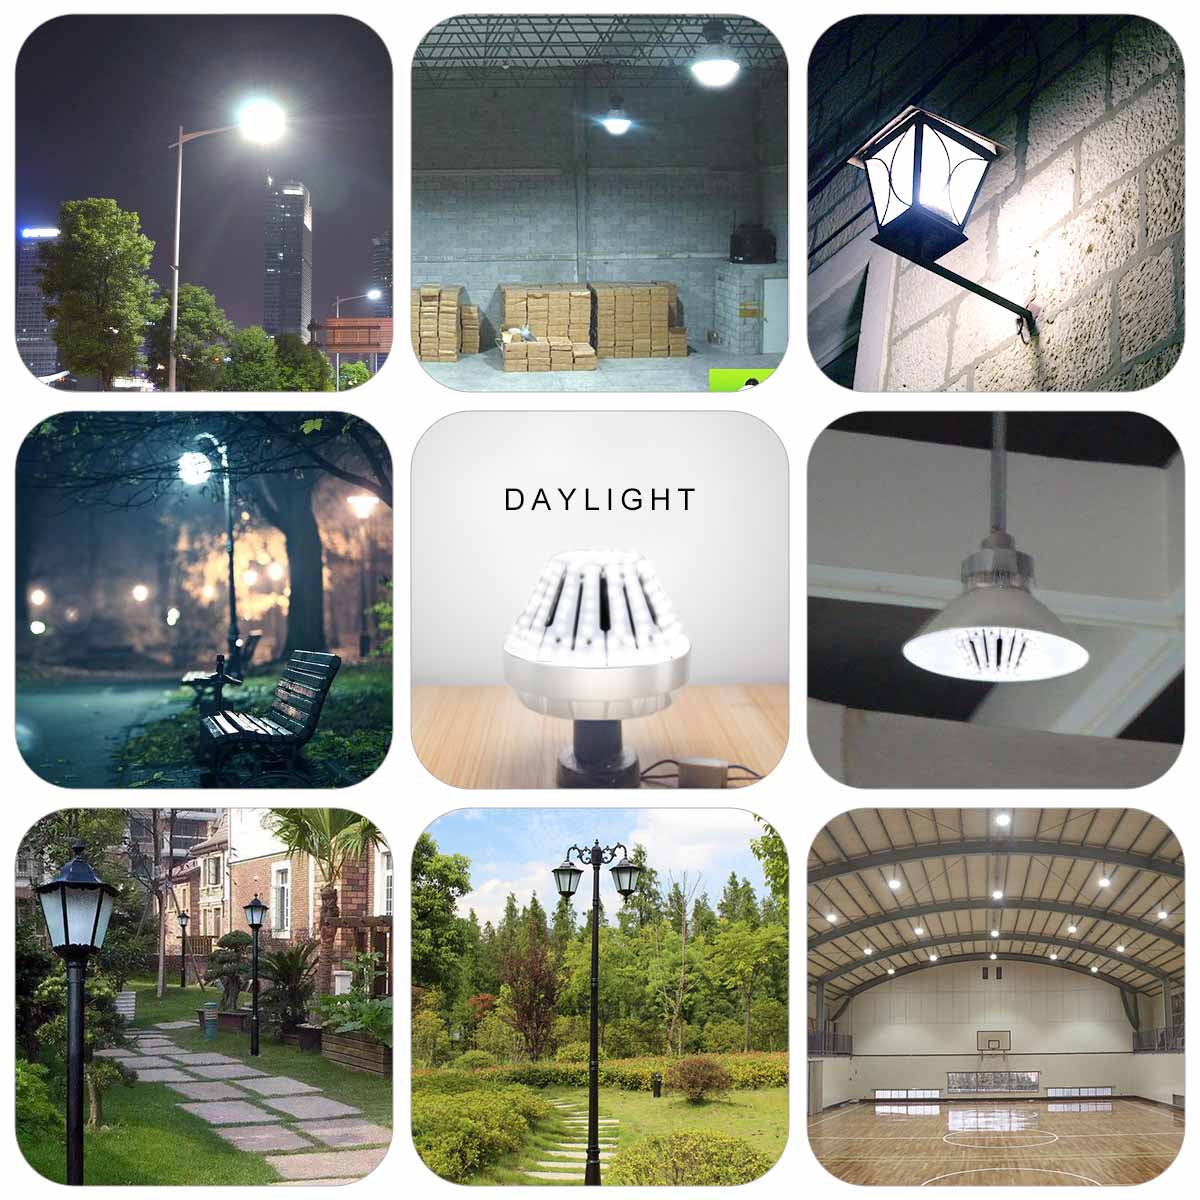 KAWELL 40W LED Garden Light,E39 6000Lm 6500K Daylight Replacement for Fixtures HID/HPS for Indoor Outdoor Large Area Home Street Lamp Lighting Factory Warehouse High Bay Barn Porch Backyard Garden